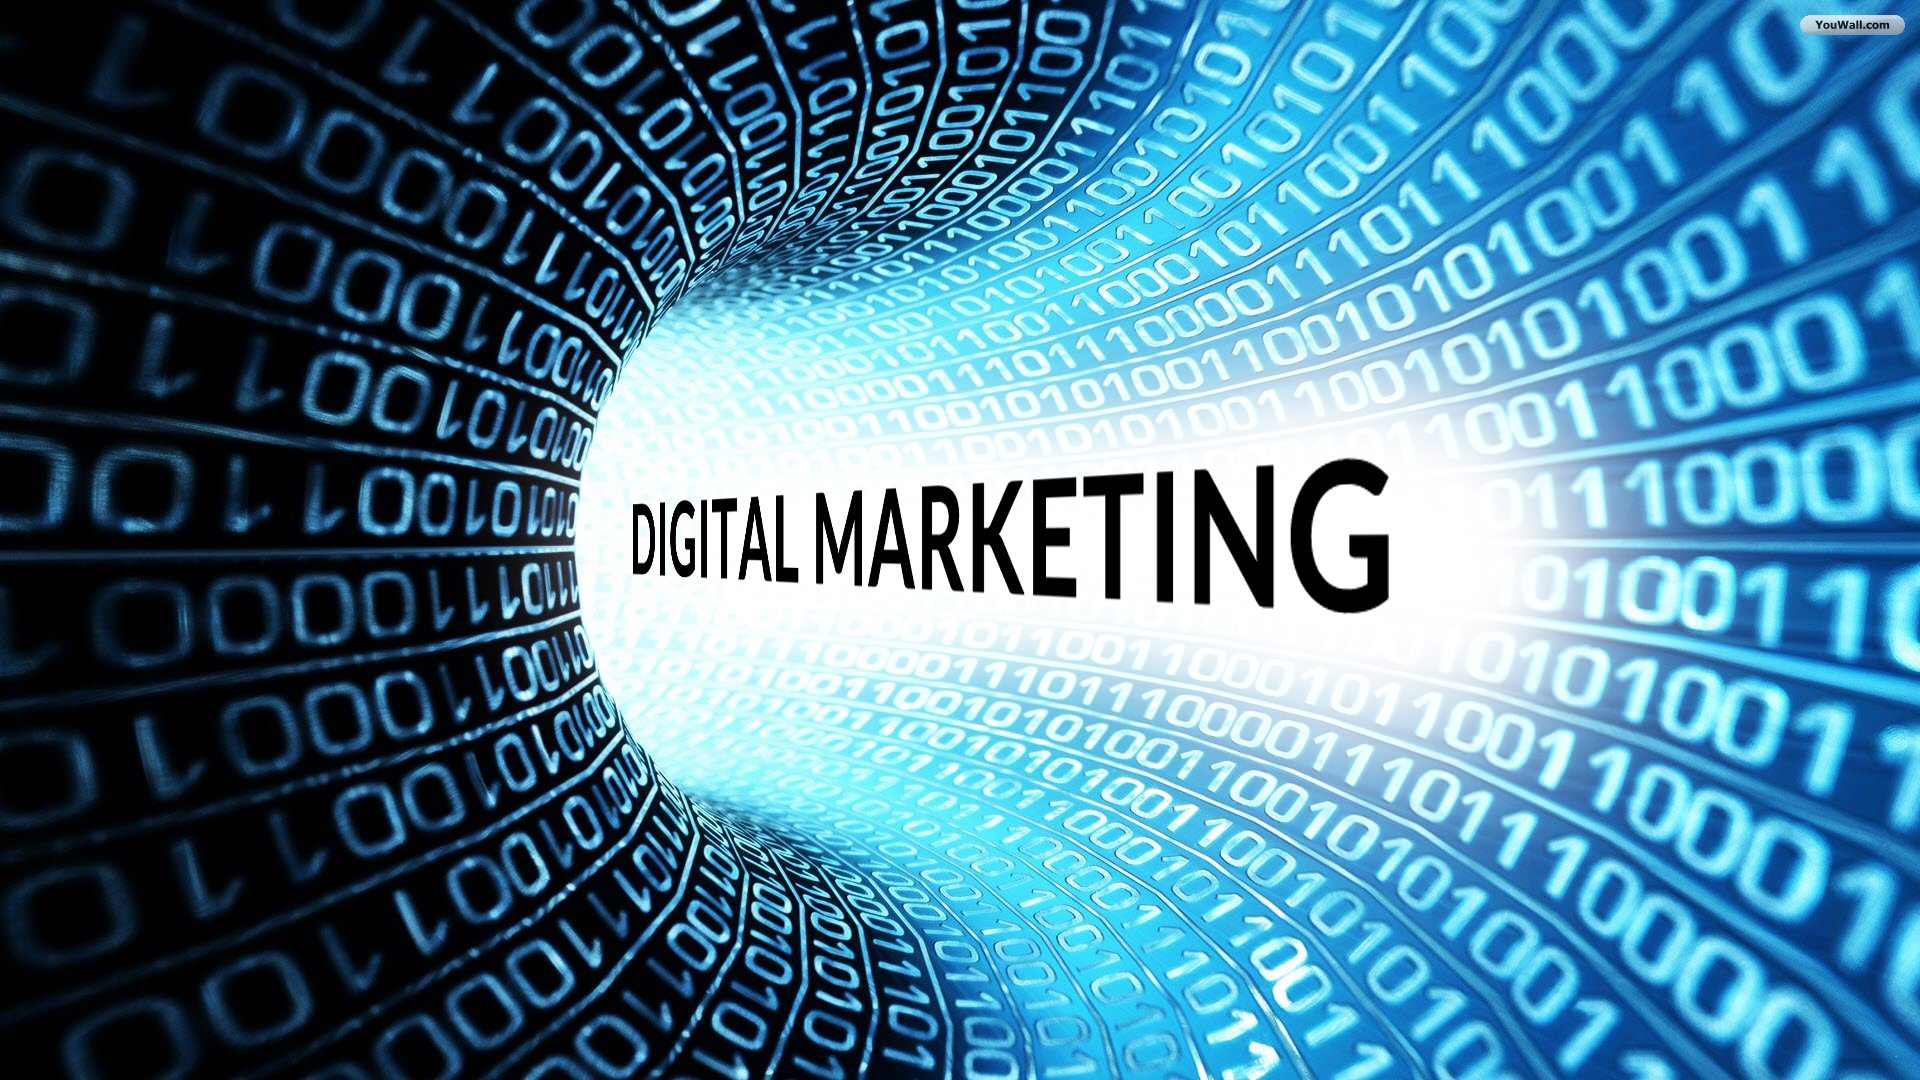 the advertising market Online marketing is a set of tools and methodologies used for promoting products and services through the internet online marketing includes a wider range of marketing elements than traditional business marketing due to the extra channels and marketing mechanisms available on the internet.